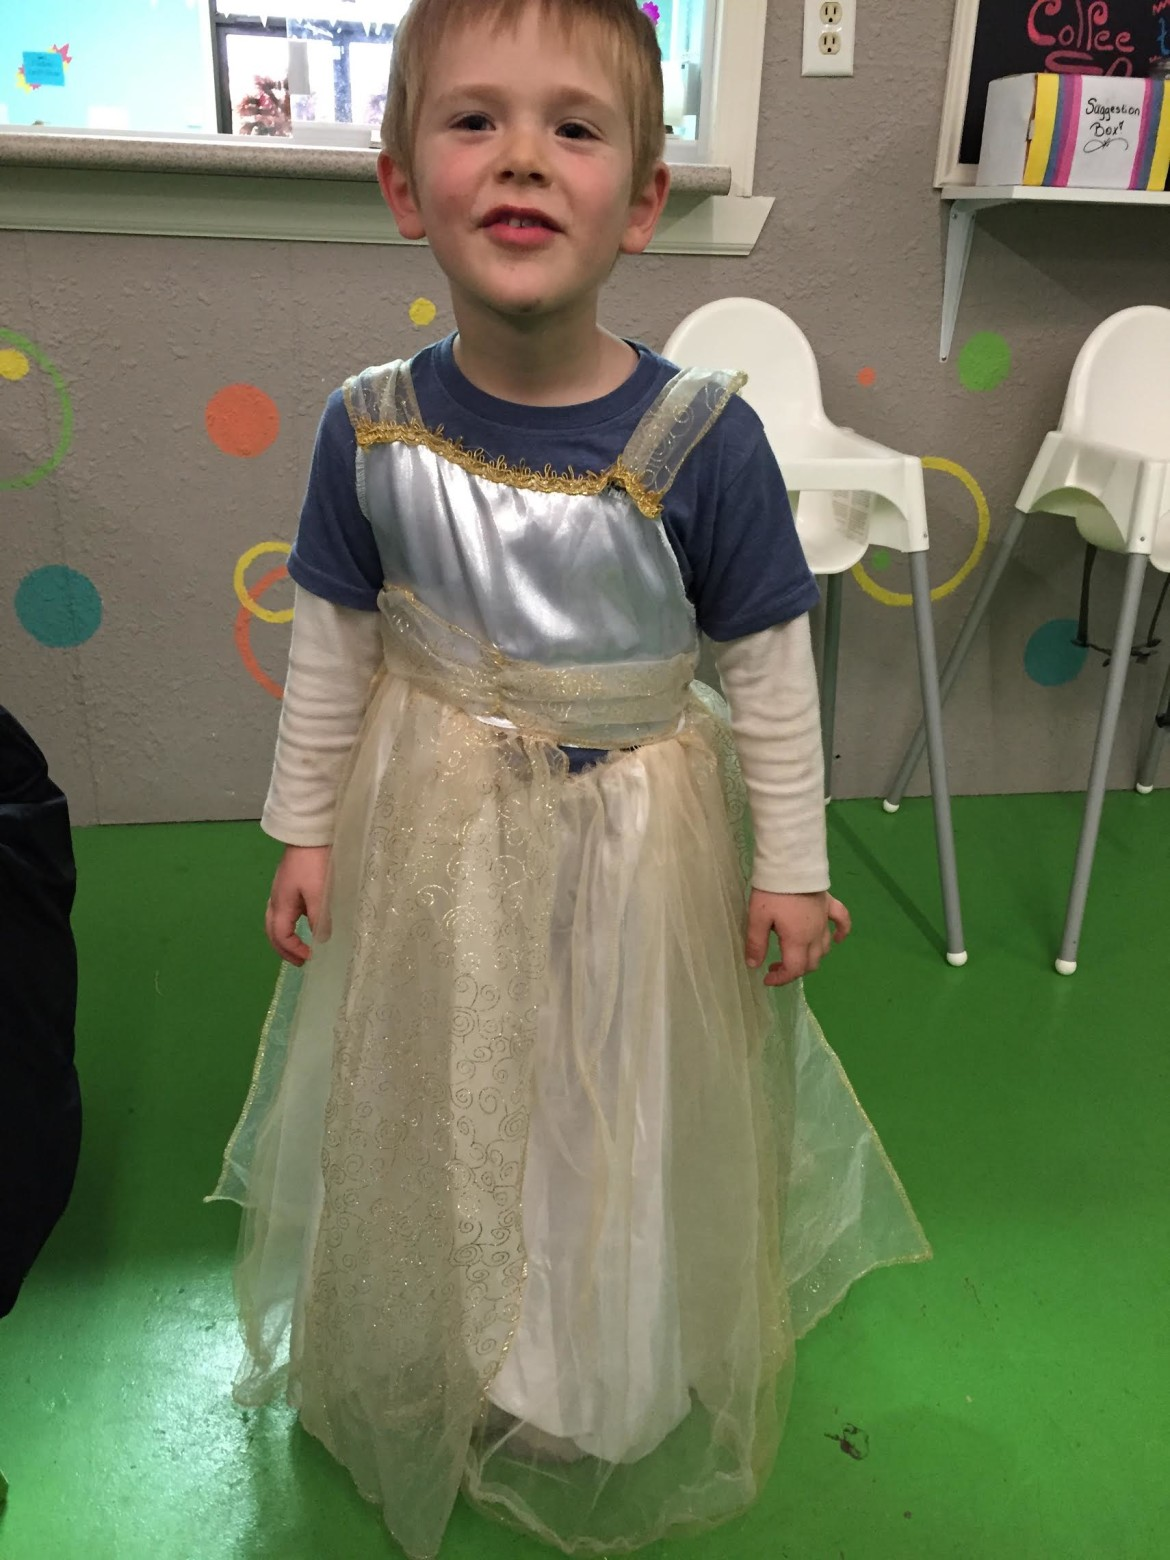 My Son Wears Dresses And Clothes Review